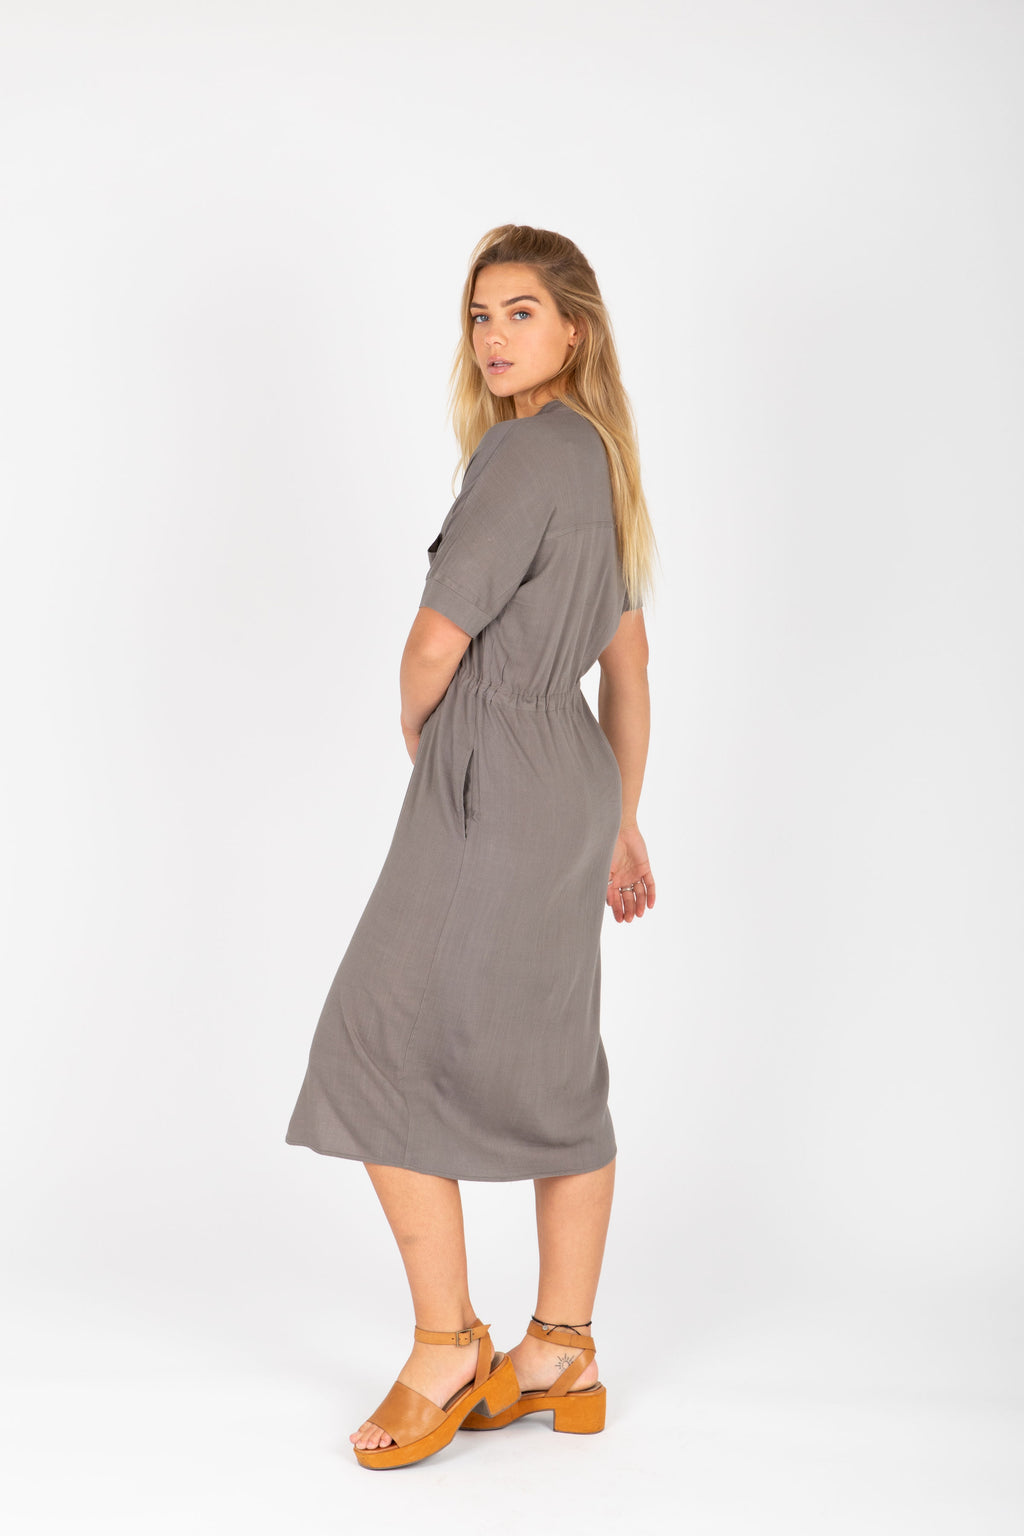 The Lacey Button Casual Dress in Stone, studio shoot; side view